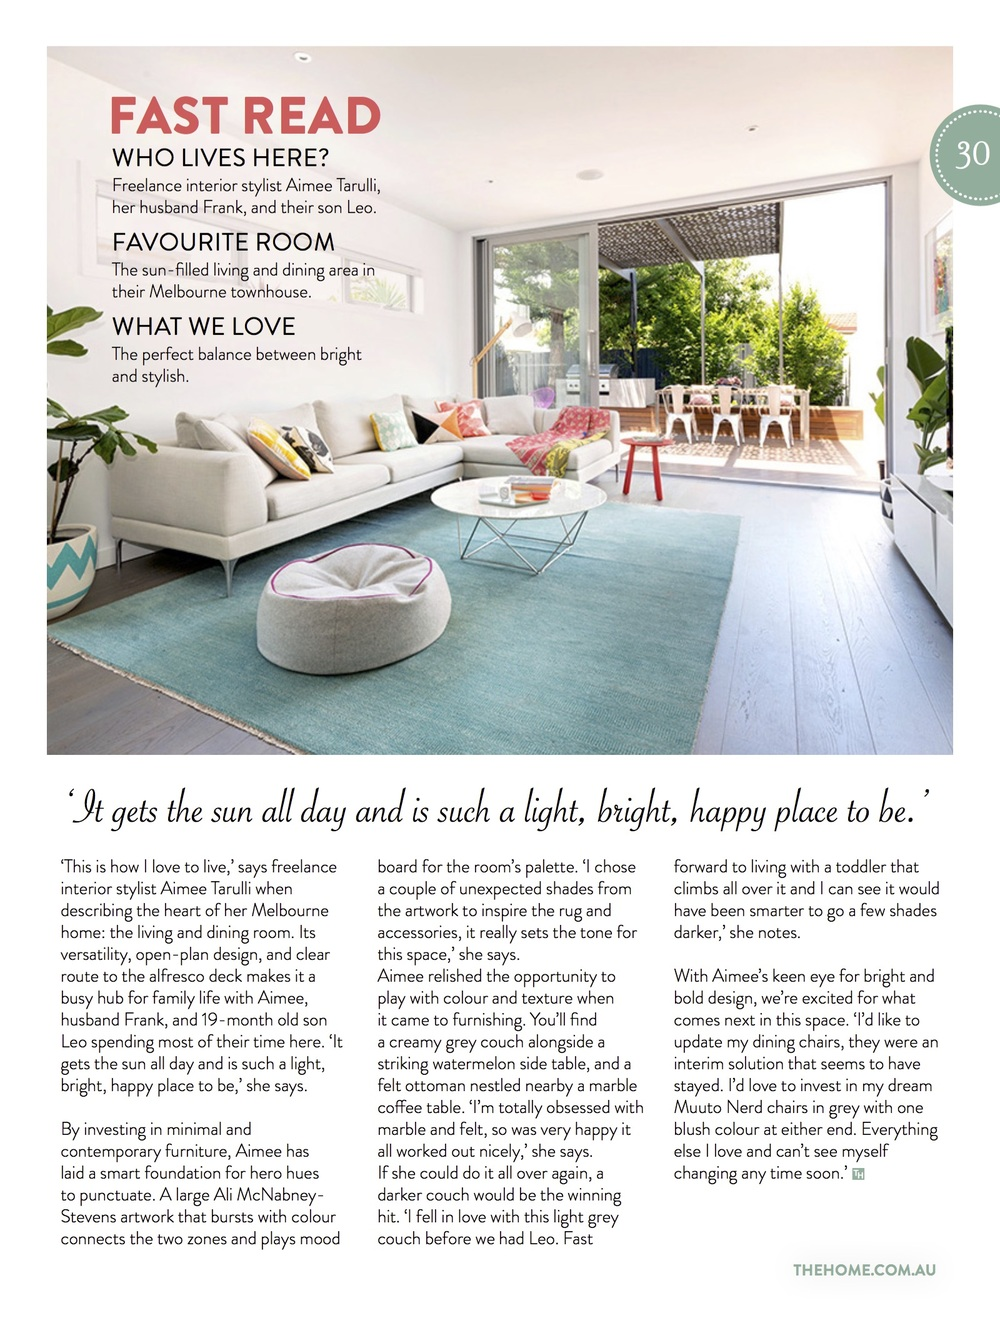 The Home Magazine2.jpg